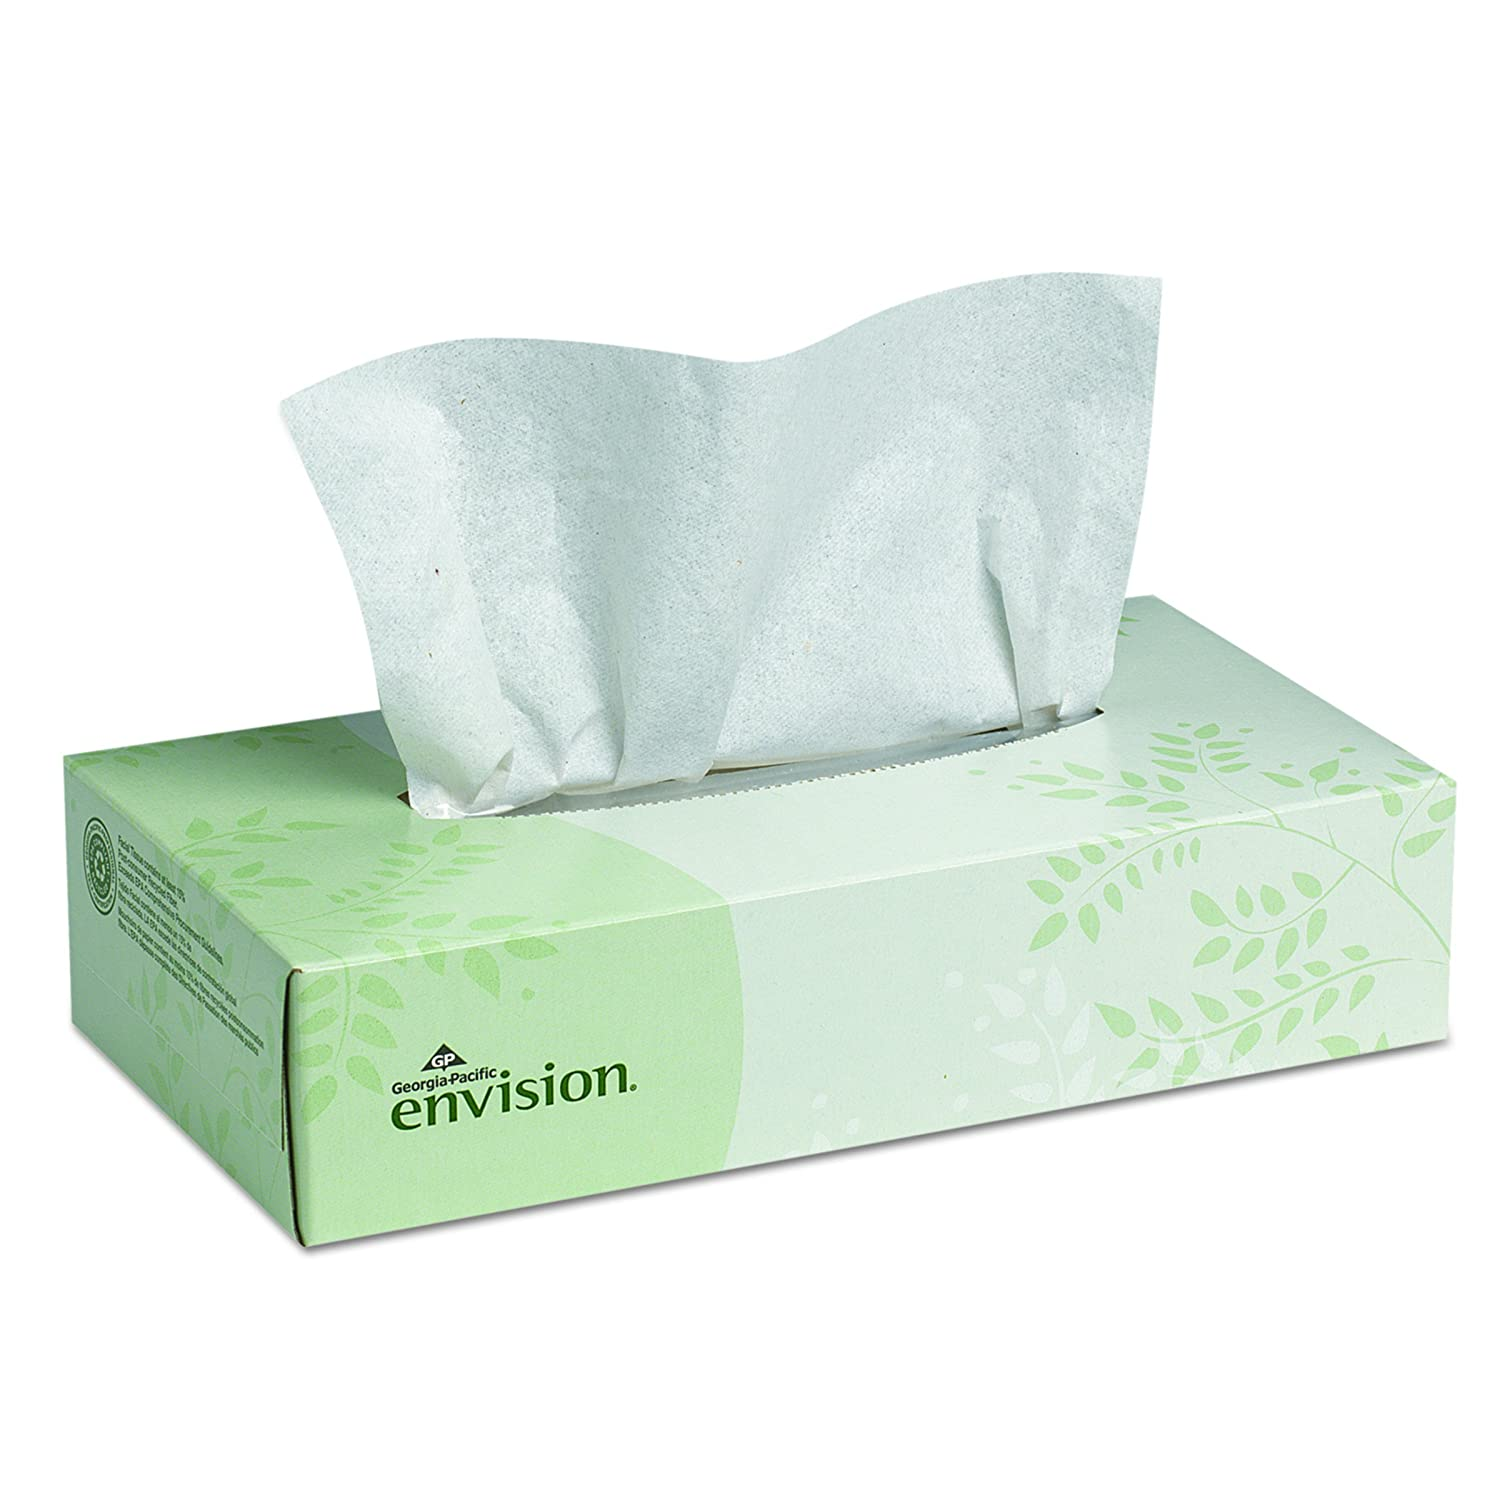 Envision 2-Ply Facial Tissue by GP PRO (Georgia-Pacific), Flat Box, 47410, 100 Sheets Per Box, 30 Boxes Per Case